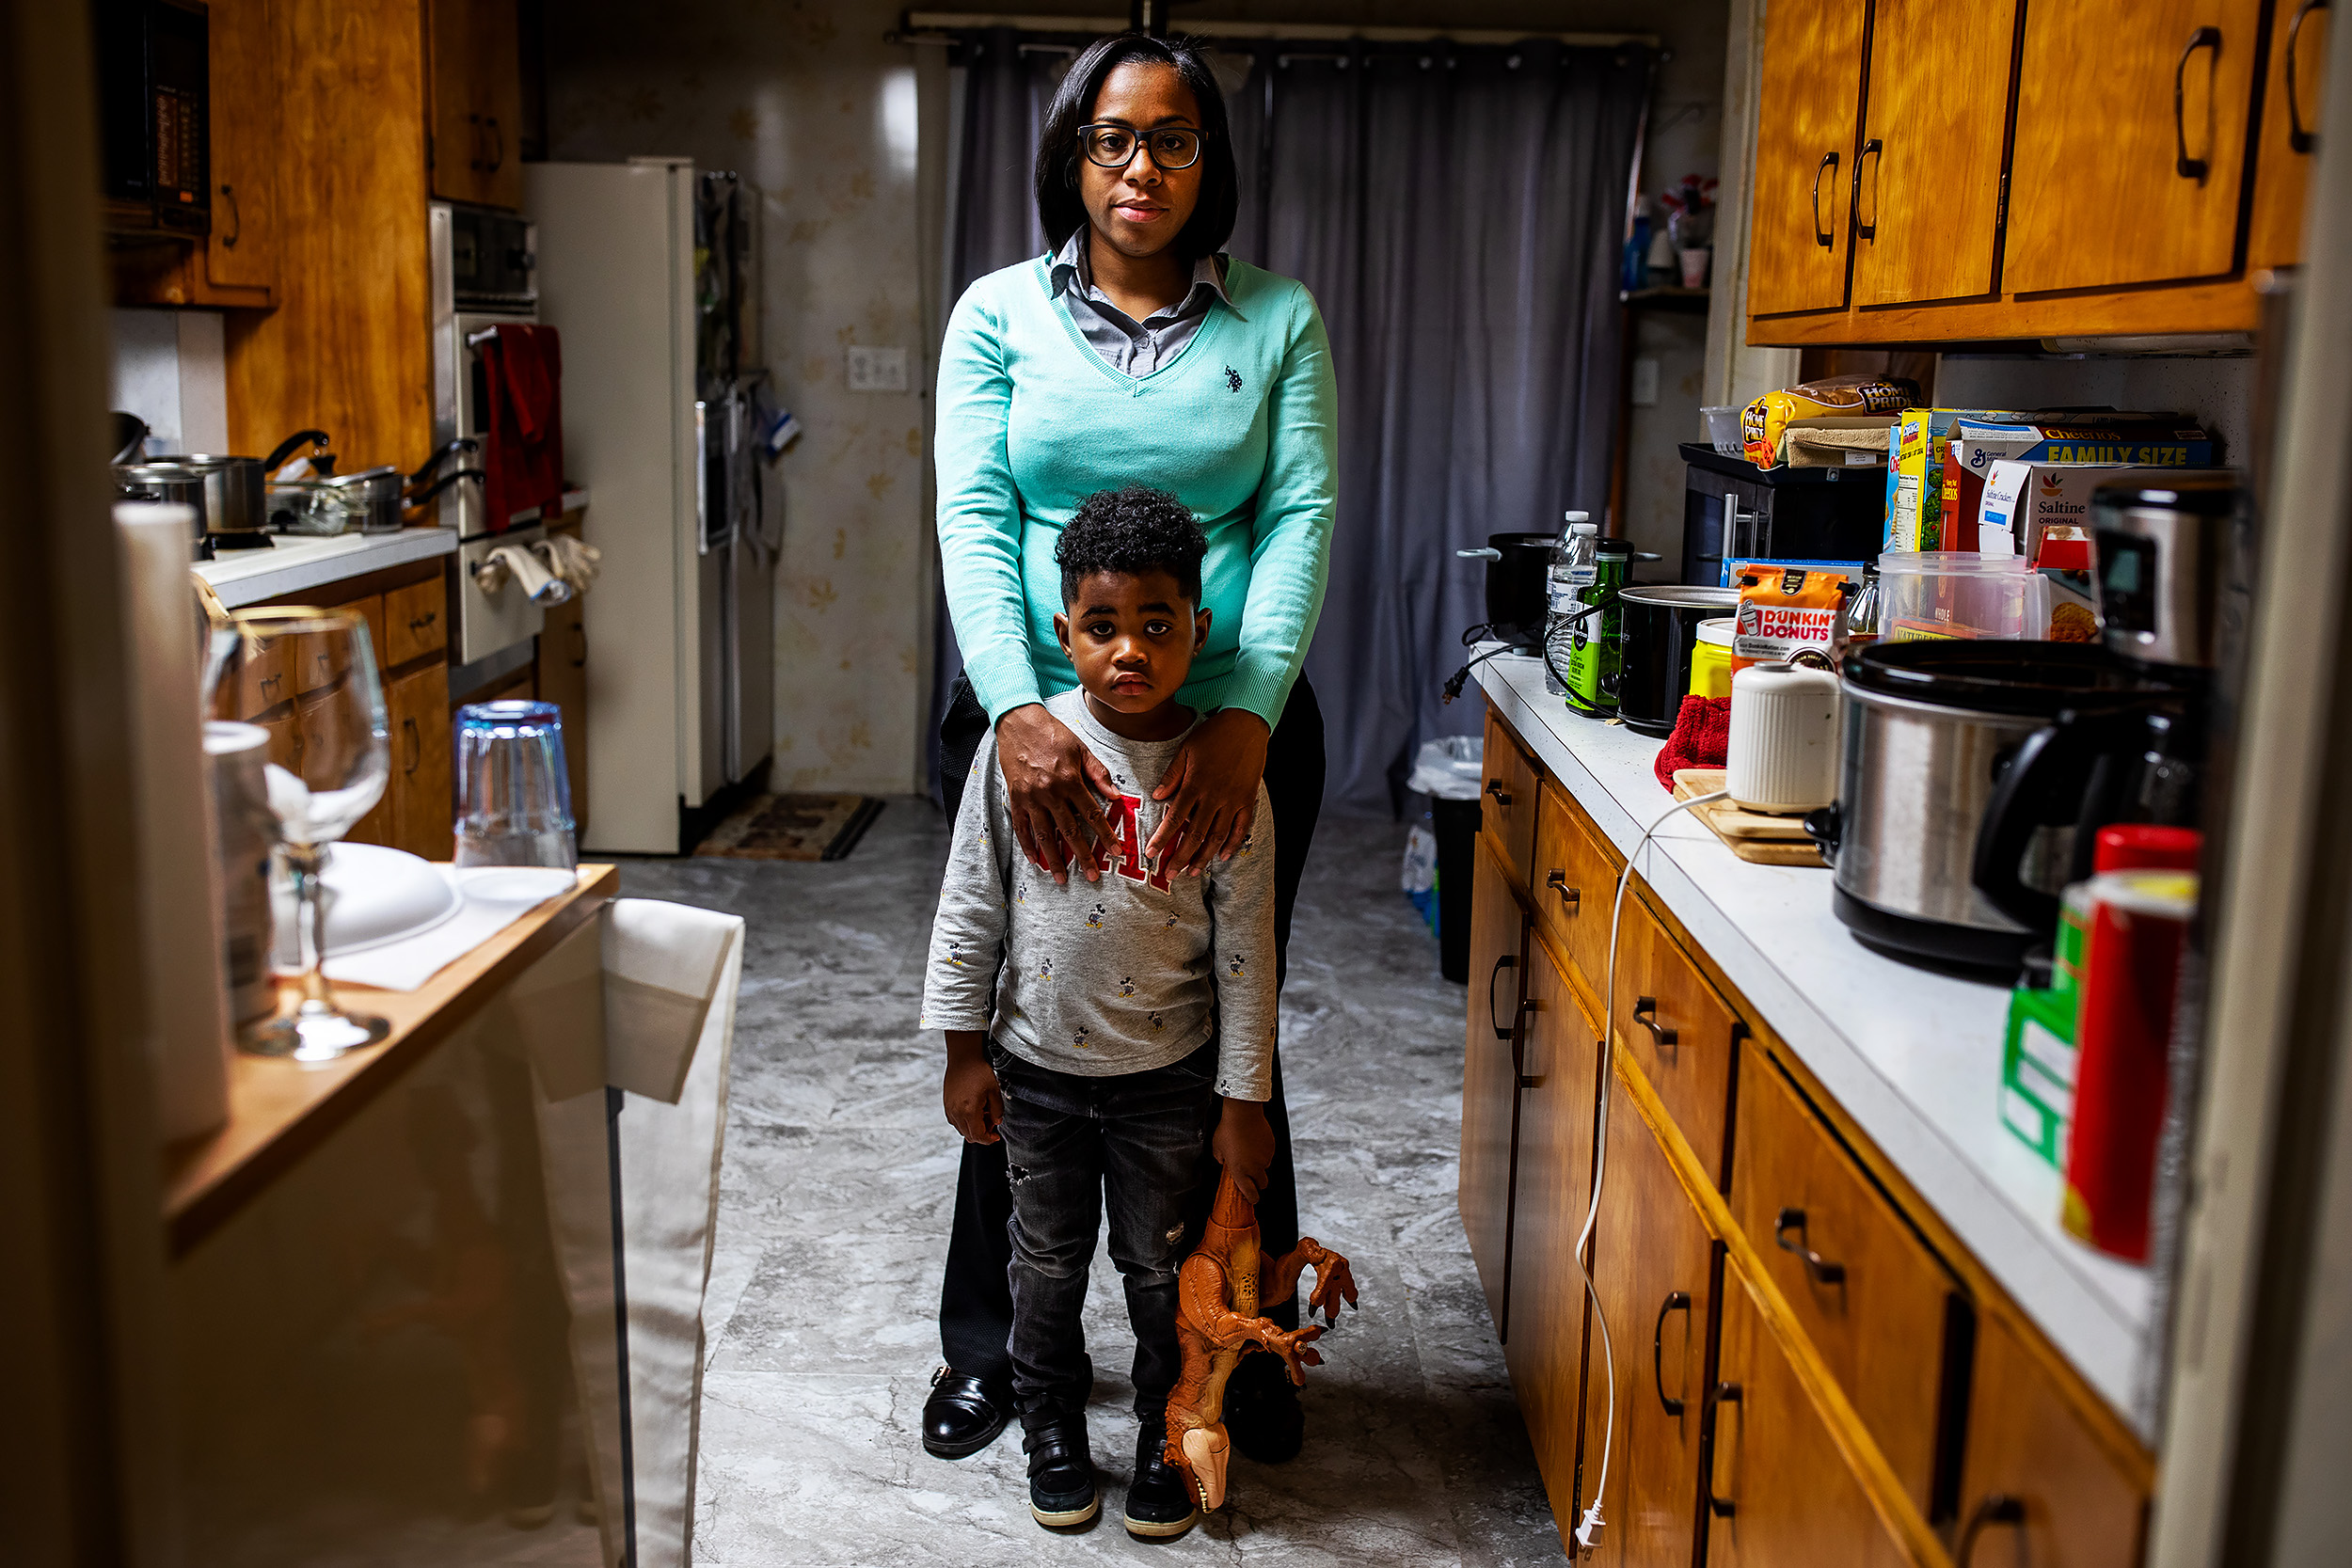 Shakima Thomas with her son Bryce at her home in Newark, New Jersey. Shakima's home water pipe was recently replaced. Newark is still in the process of fixing the corrosion control treatment process at the Pequannock plant, which is contributing to the elevated lead levels.